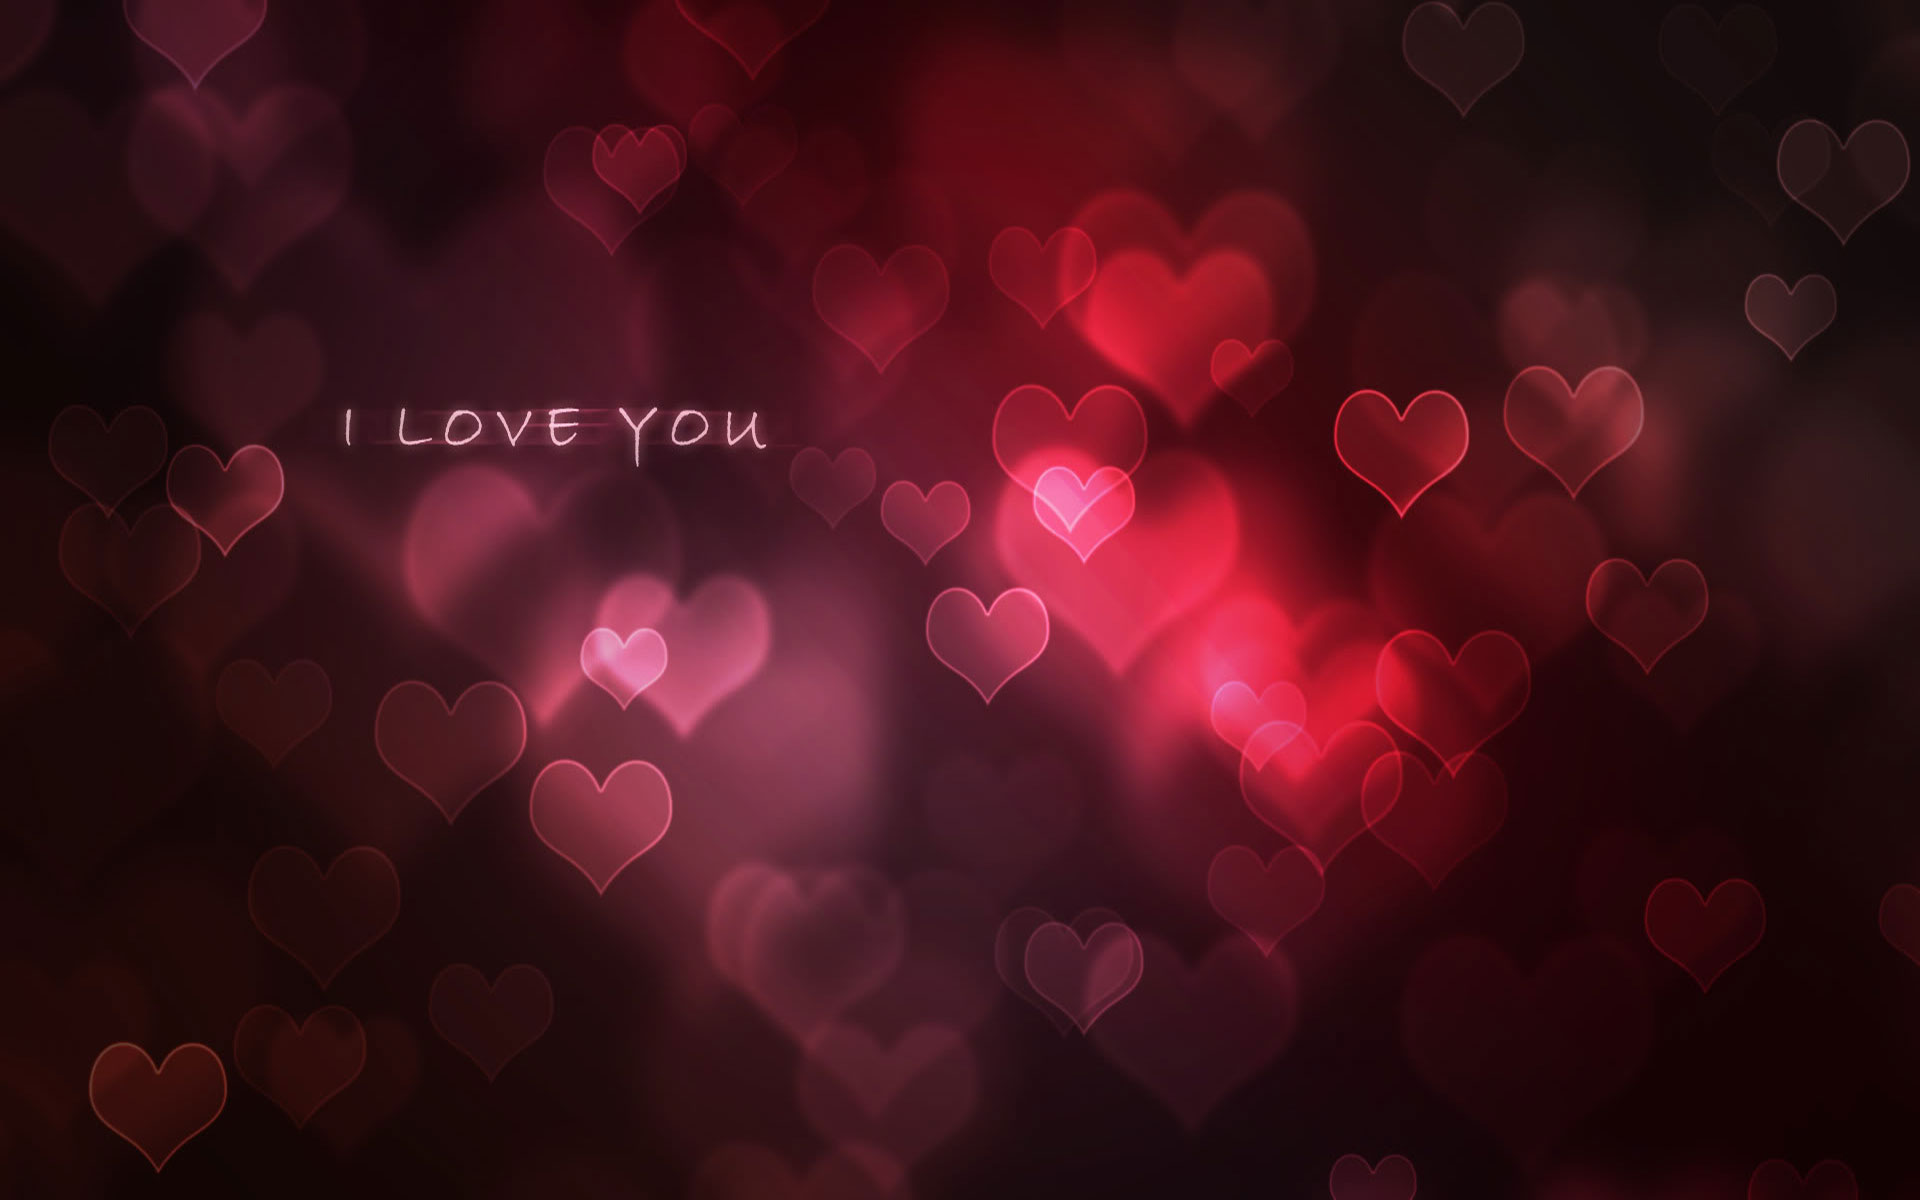 Love Wallpaper With Images : 25+ Free HD I Love You Wallpapers cute I Love You Images